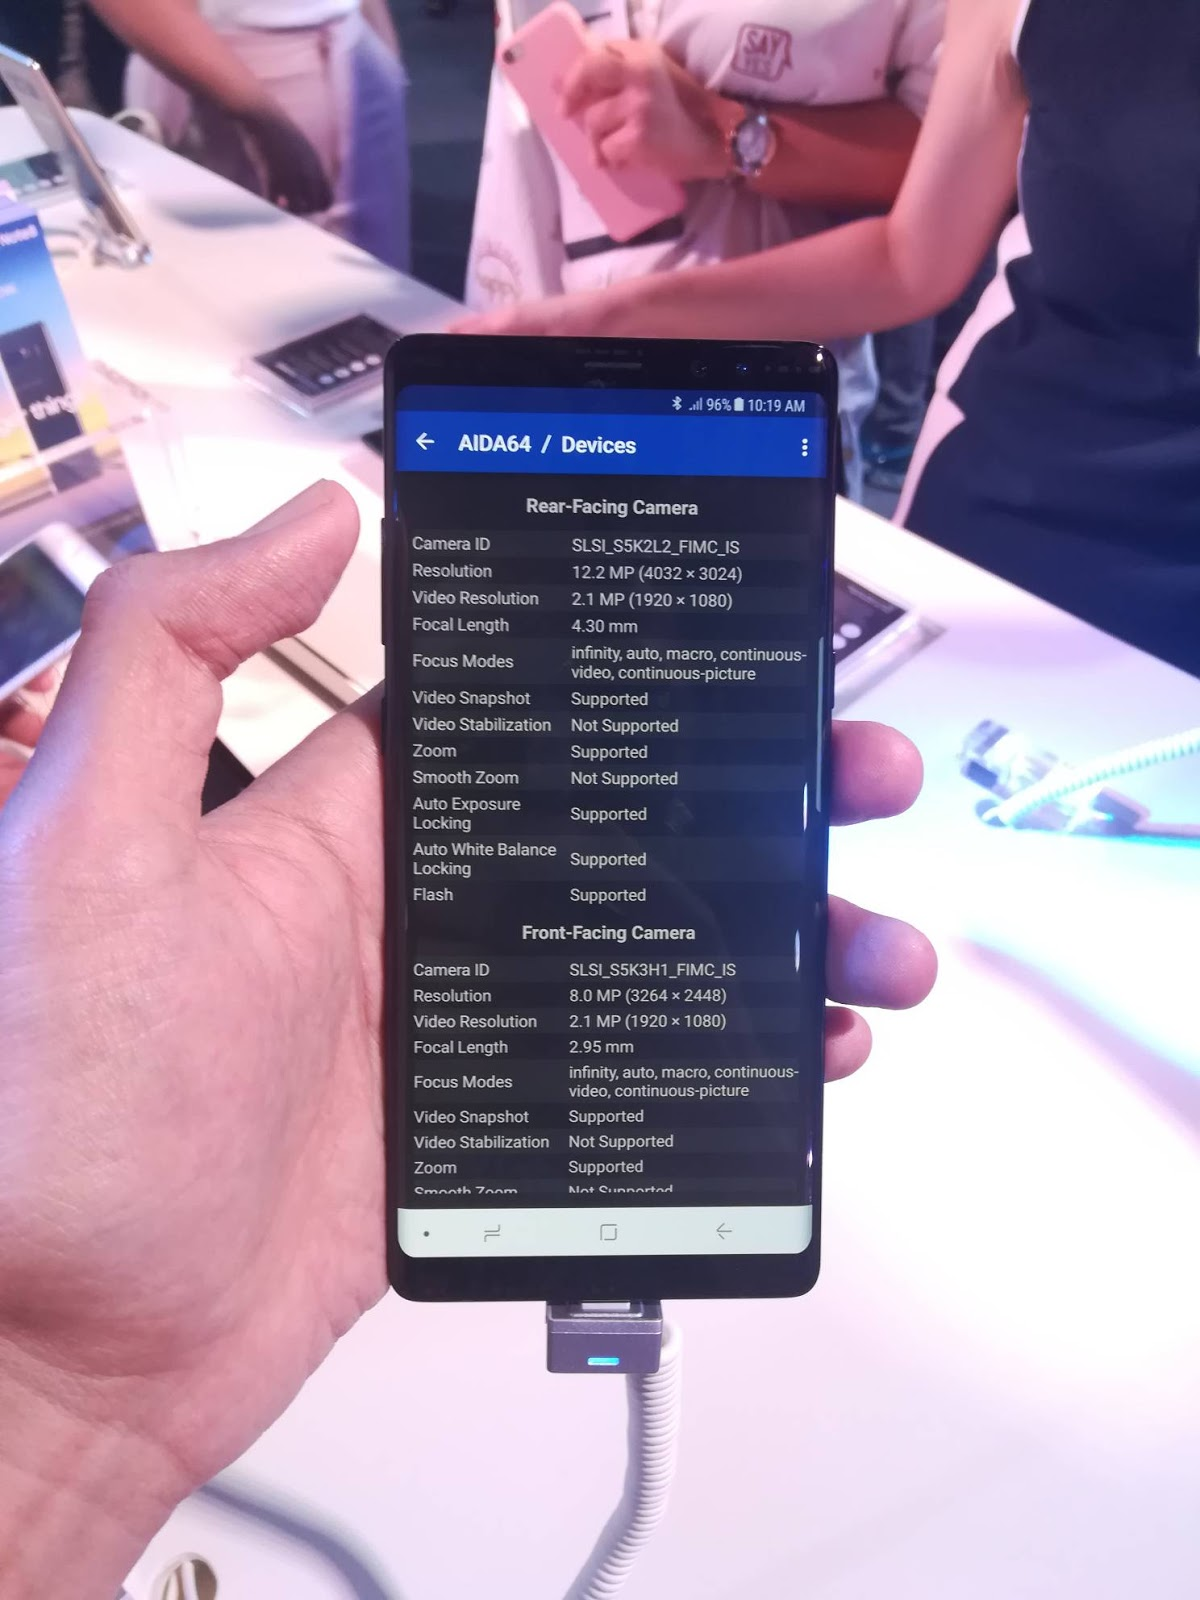 Samsung Galaxy Note 8 Now in PH, First Look, Benchmarks, Cam Samples